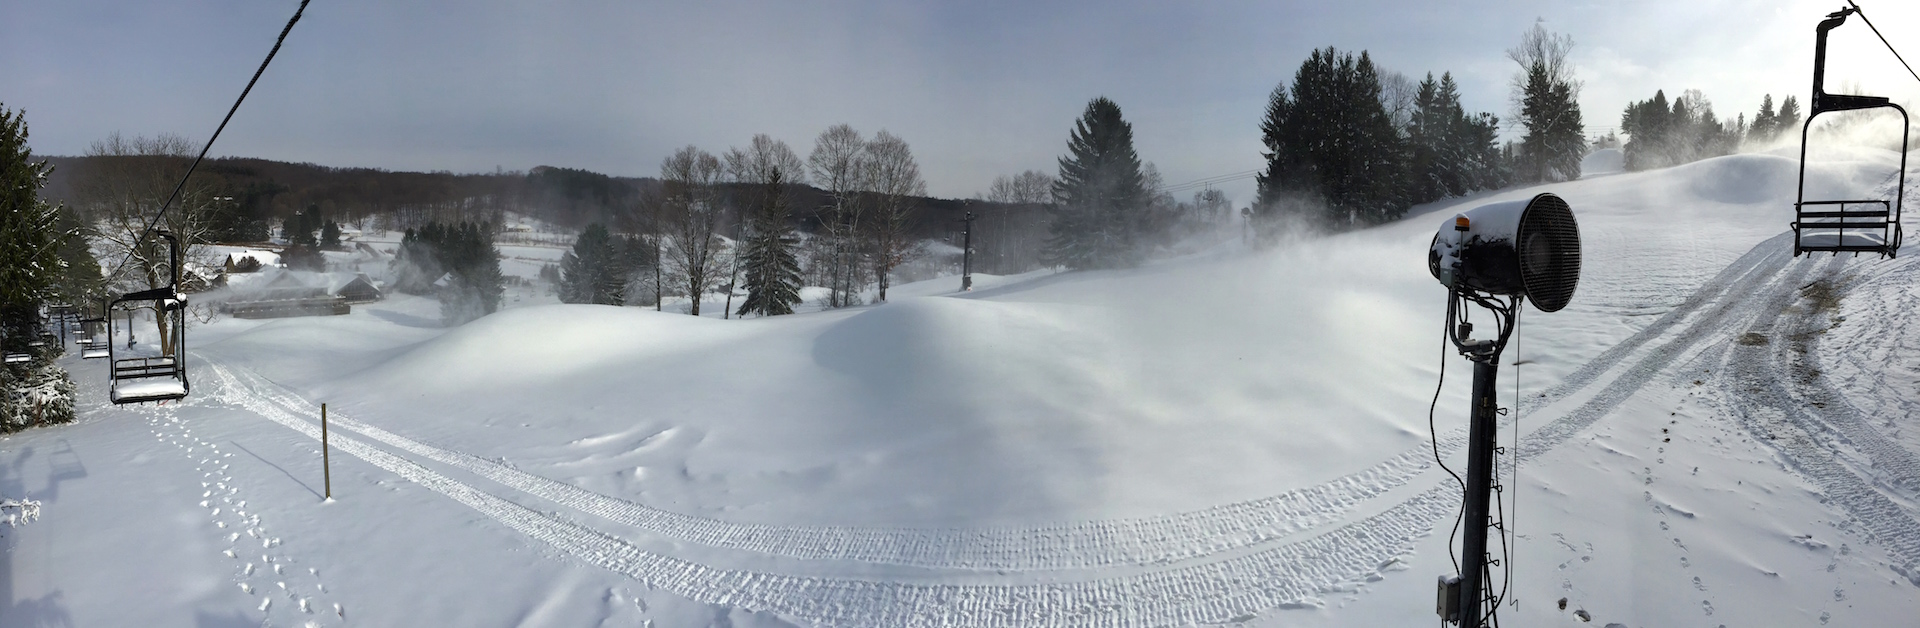 Snow Trails Snowmaking Campaign Breaking Records